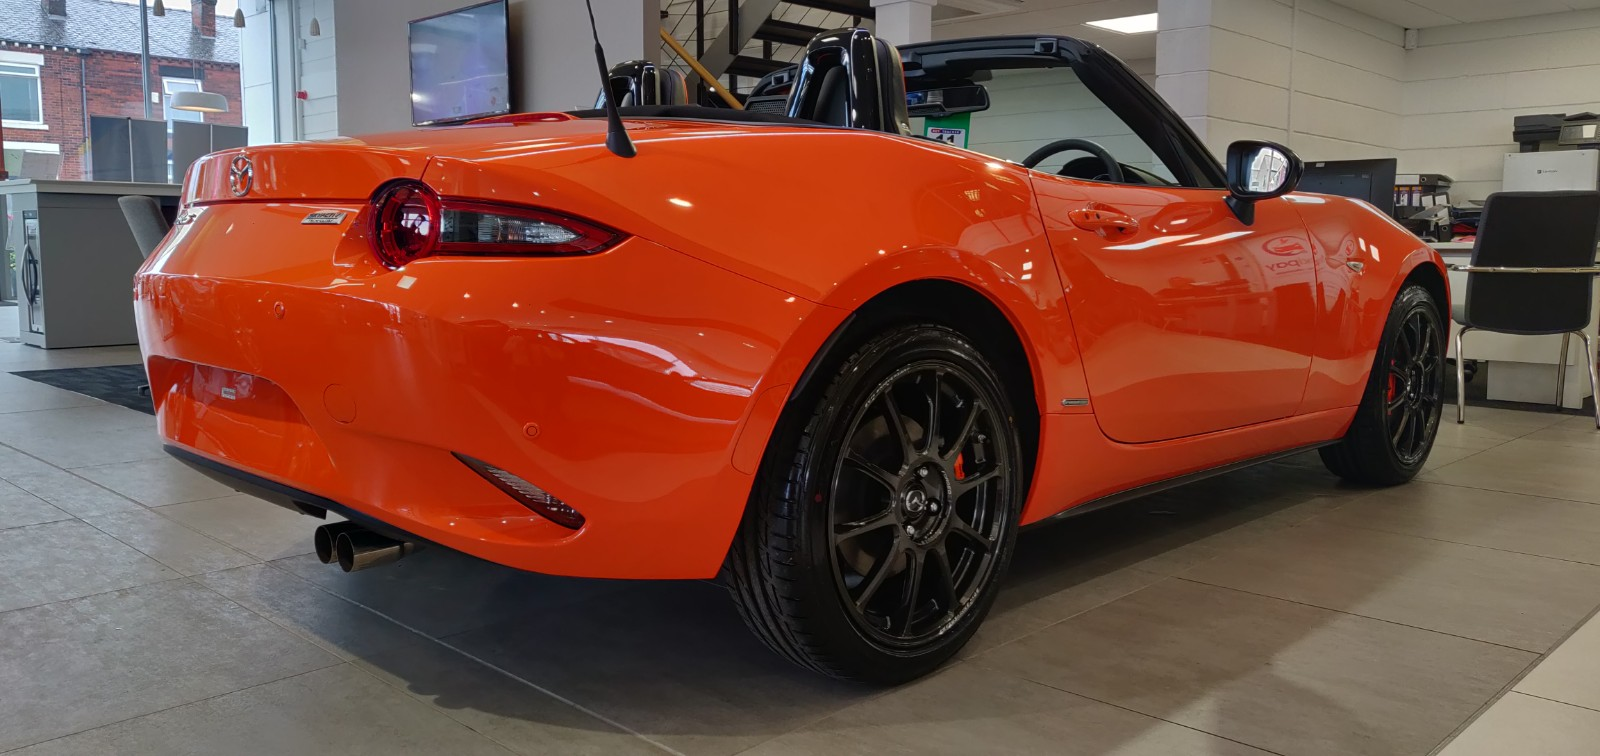 Mazda MX-5 RF 2.0 30th Anniversary SPECIAL EDITION image 8